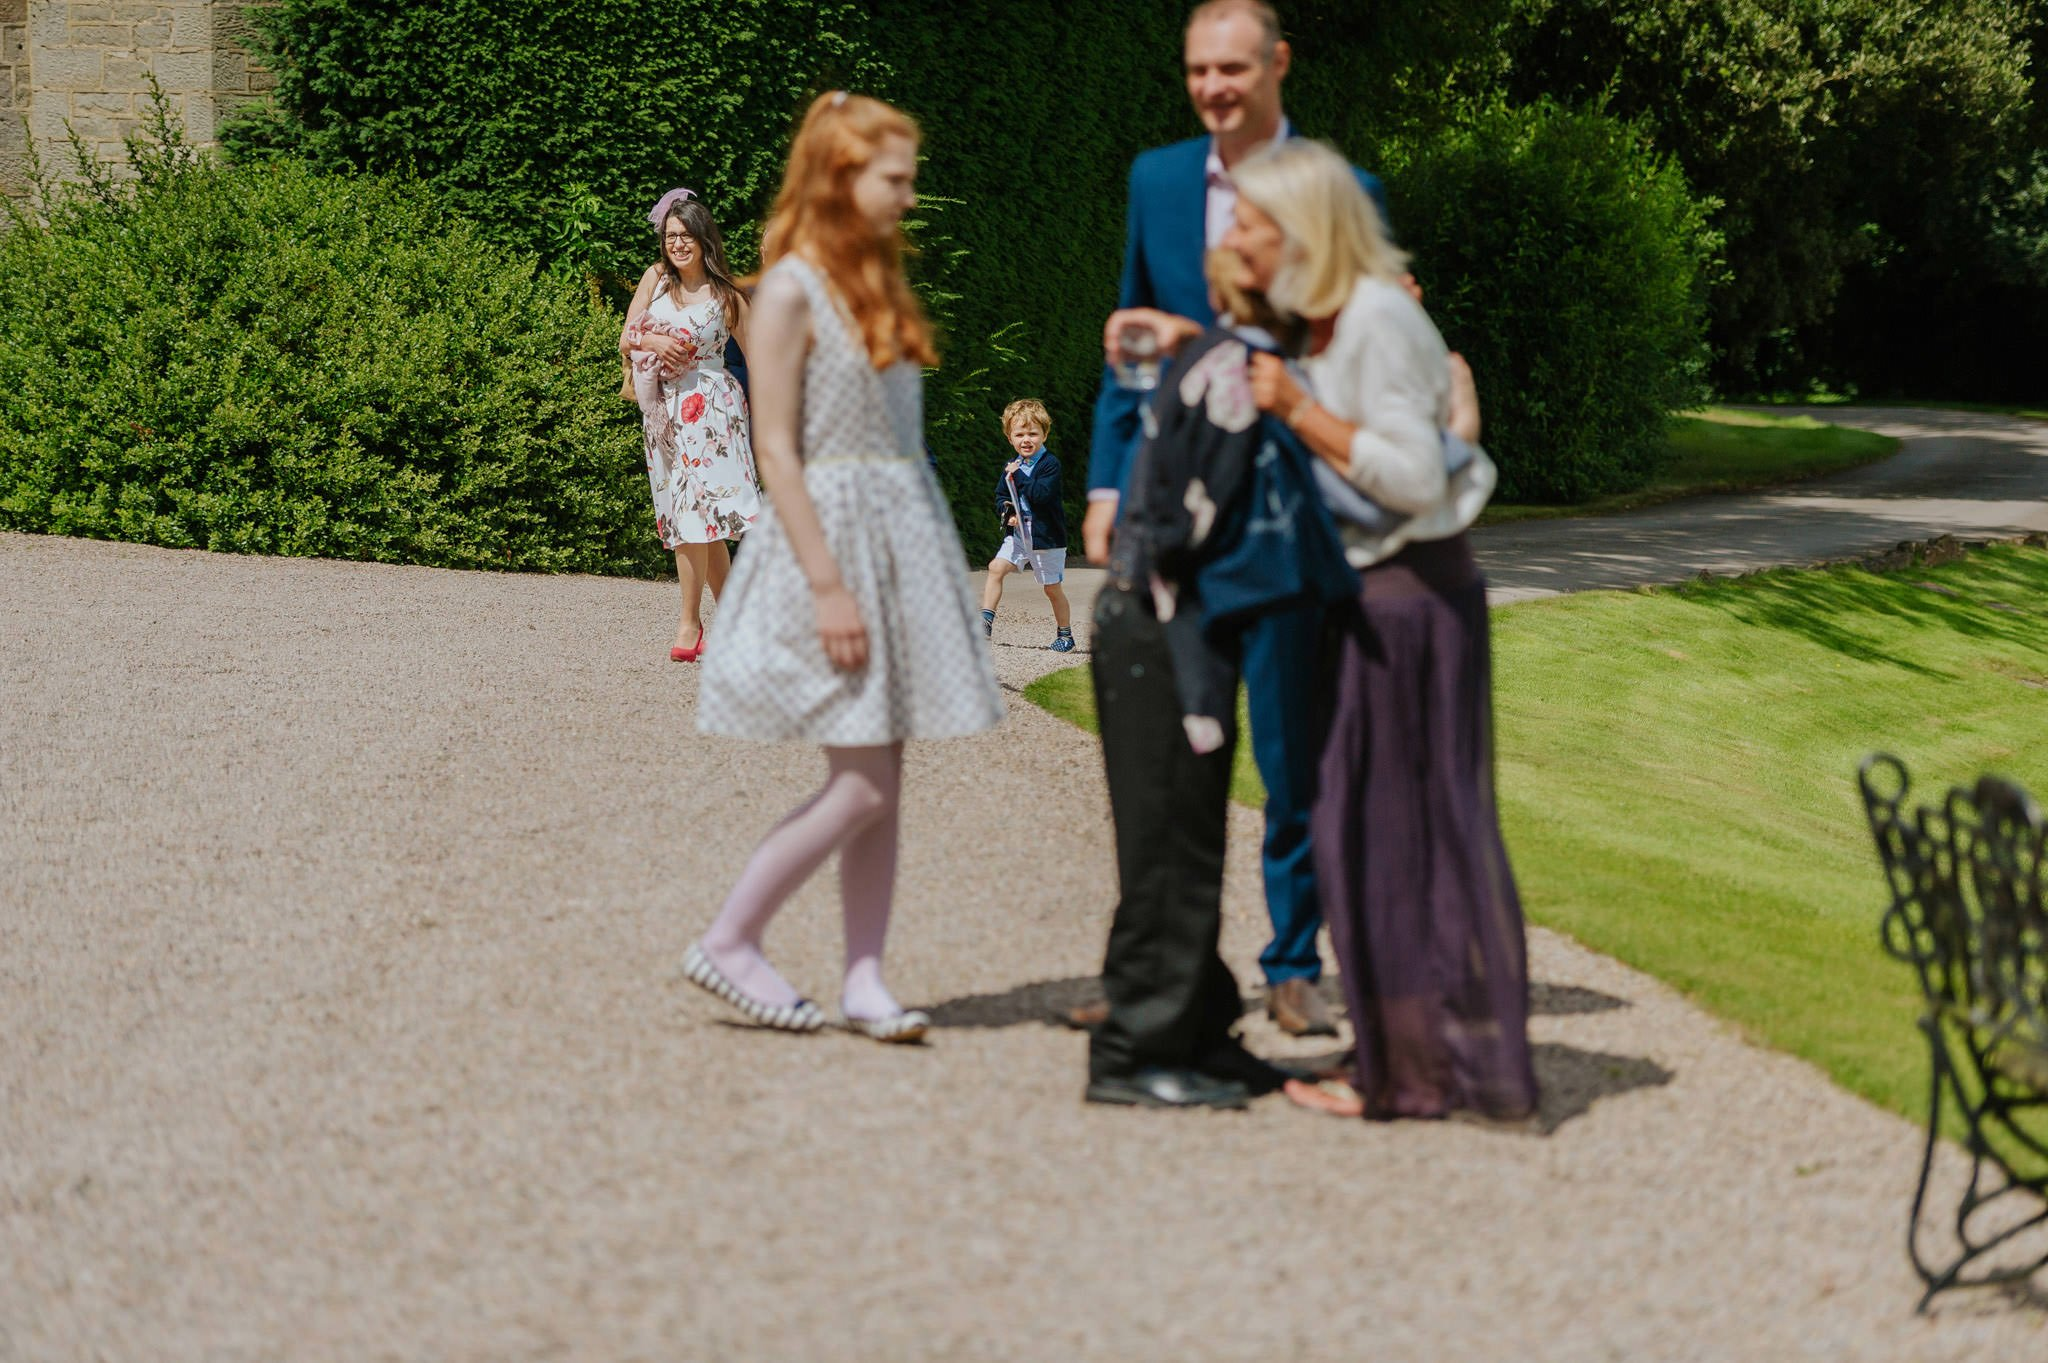 Wedding photography at Homme House in Herefordshire, West Midlands 9